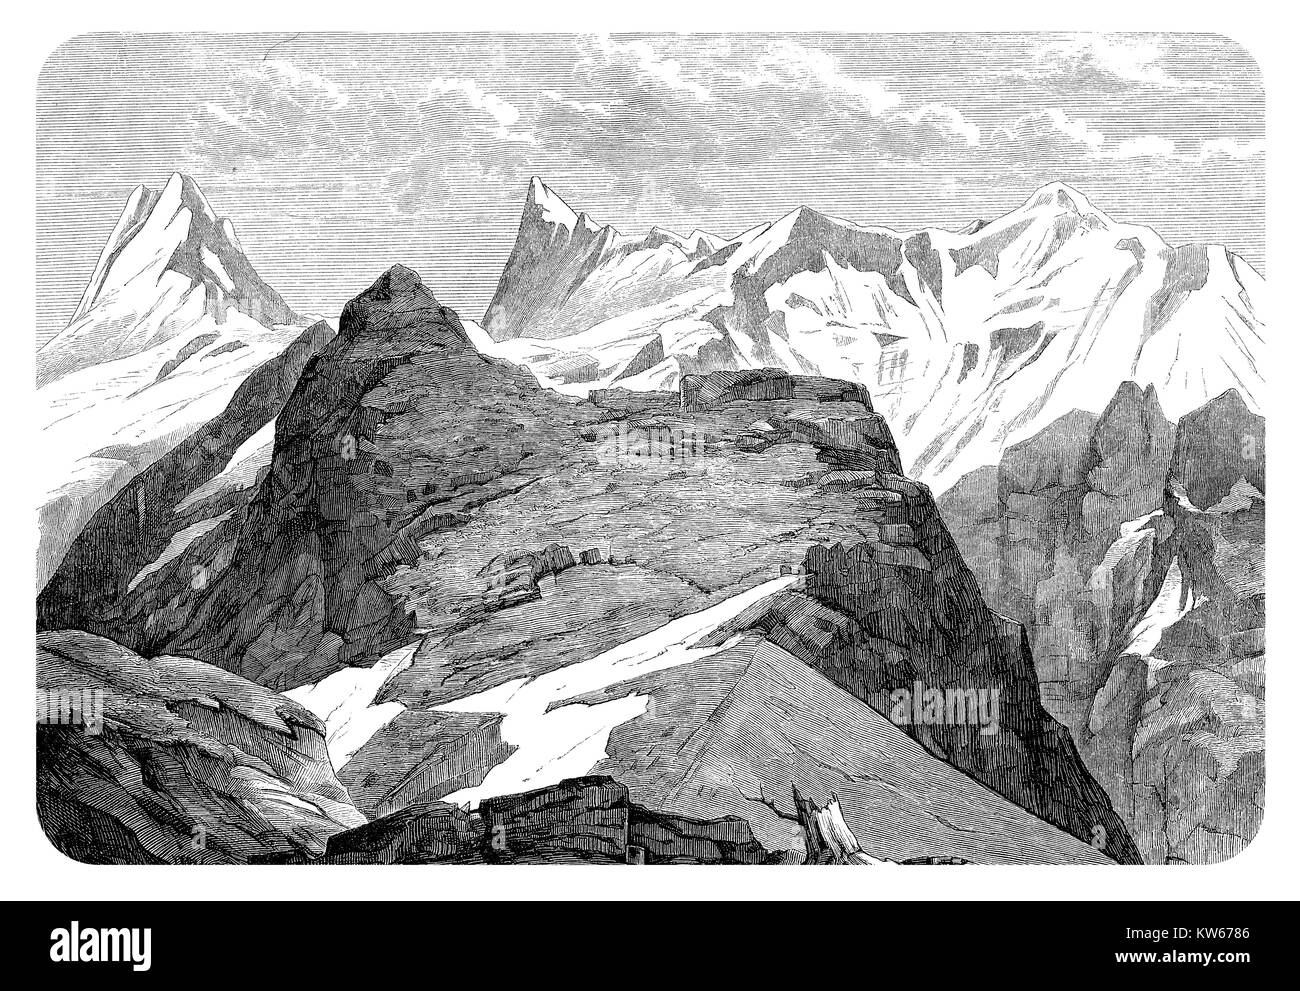 Vintage engraving of the Finsteraarhorn glacier in the Bernese Alps, the highest mountain of Switzerland - Stock Image